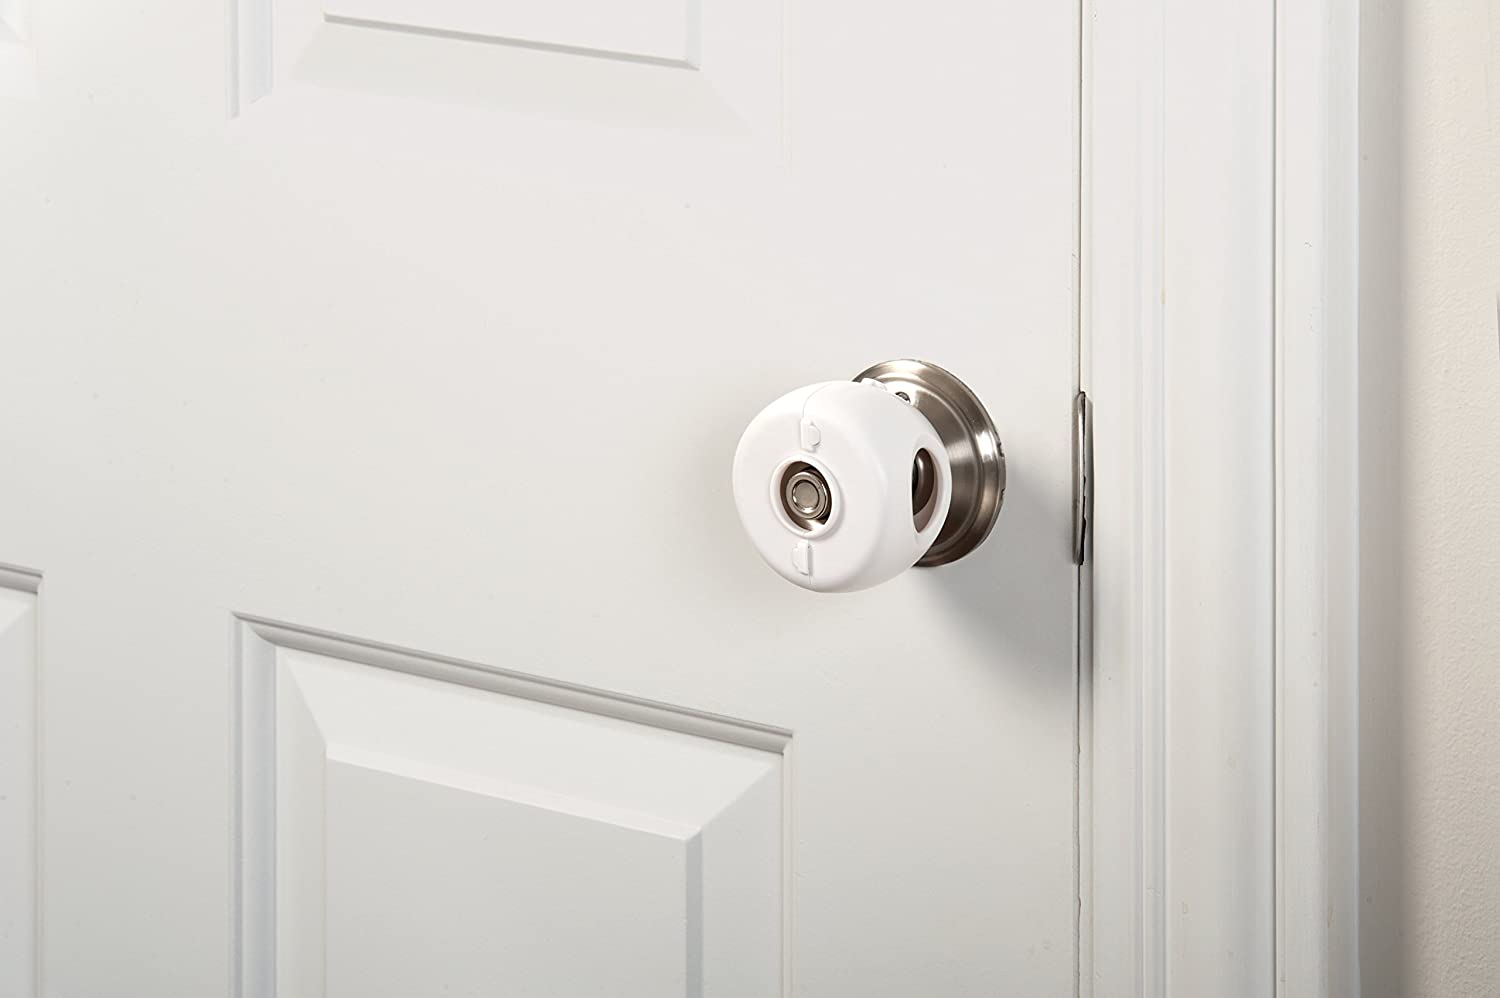 KidCO Door Knob Covers store 3 low-pricing White Count